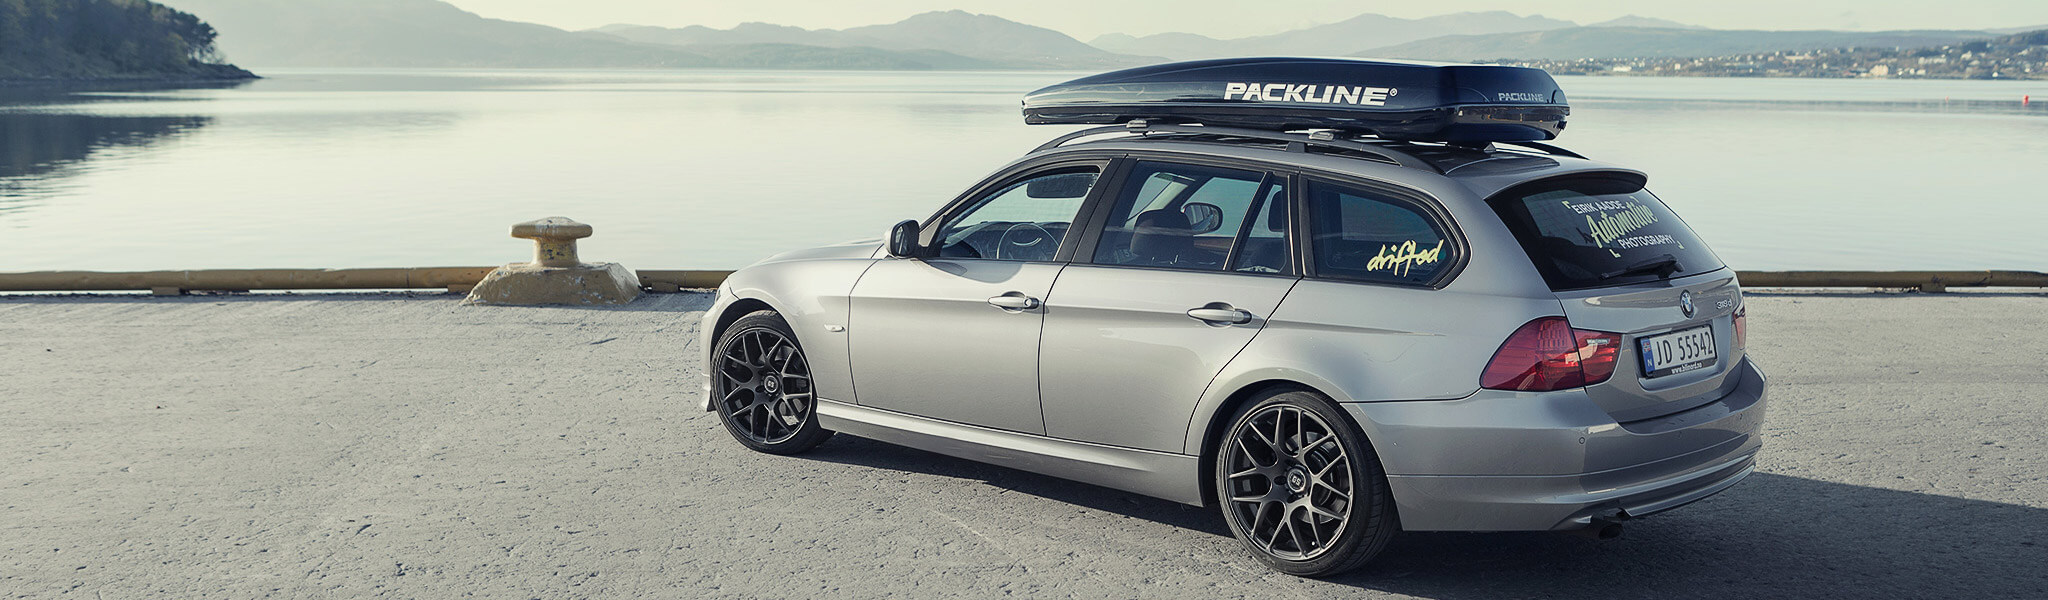 Packline roof box on BMW 3 series Touring